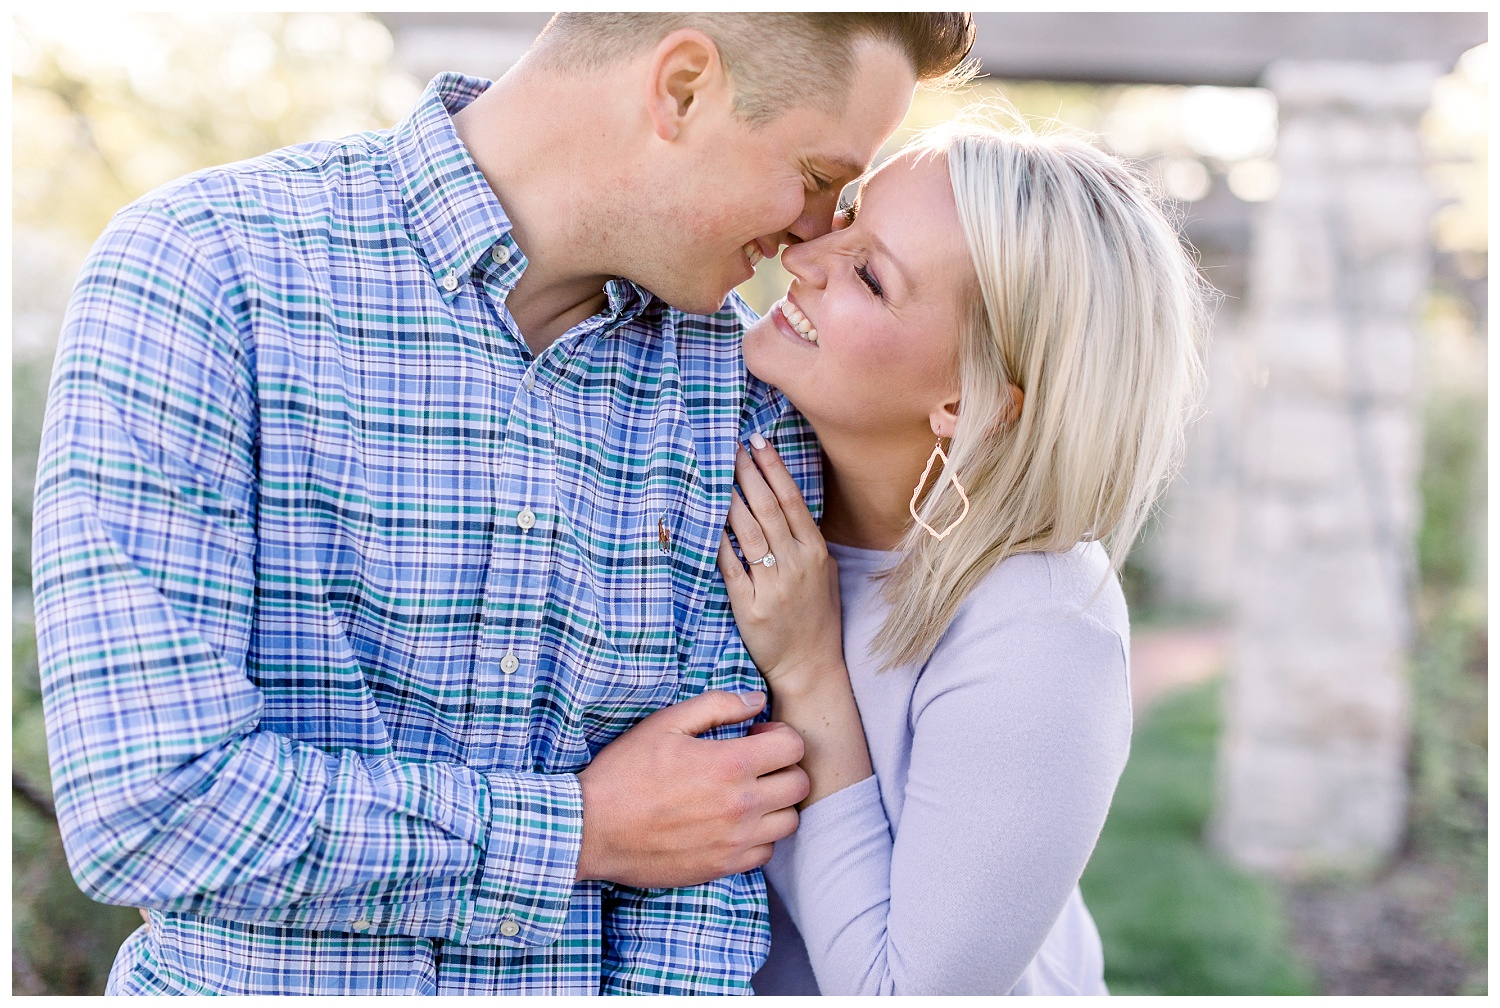 joyful and authentic engagement photos